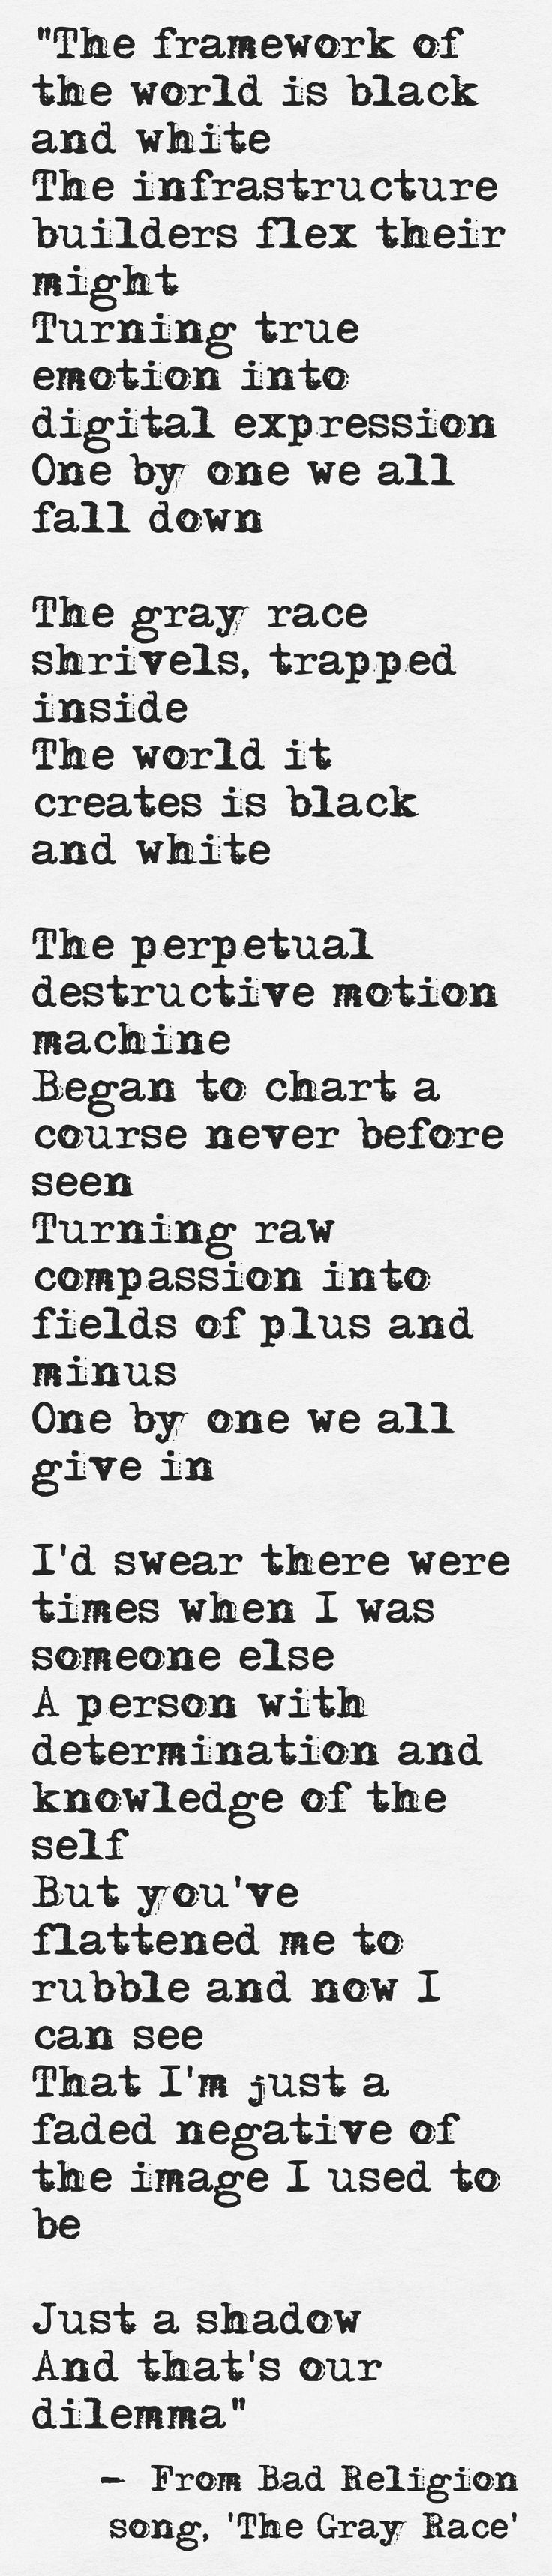 #Lyrics from Bad Religion #song, 'The Gray Race'